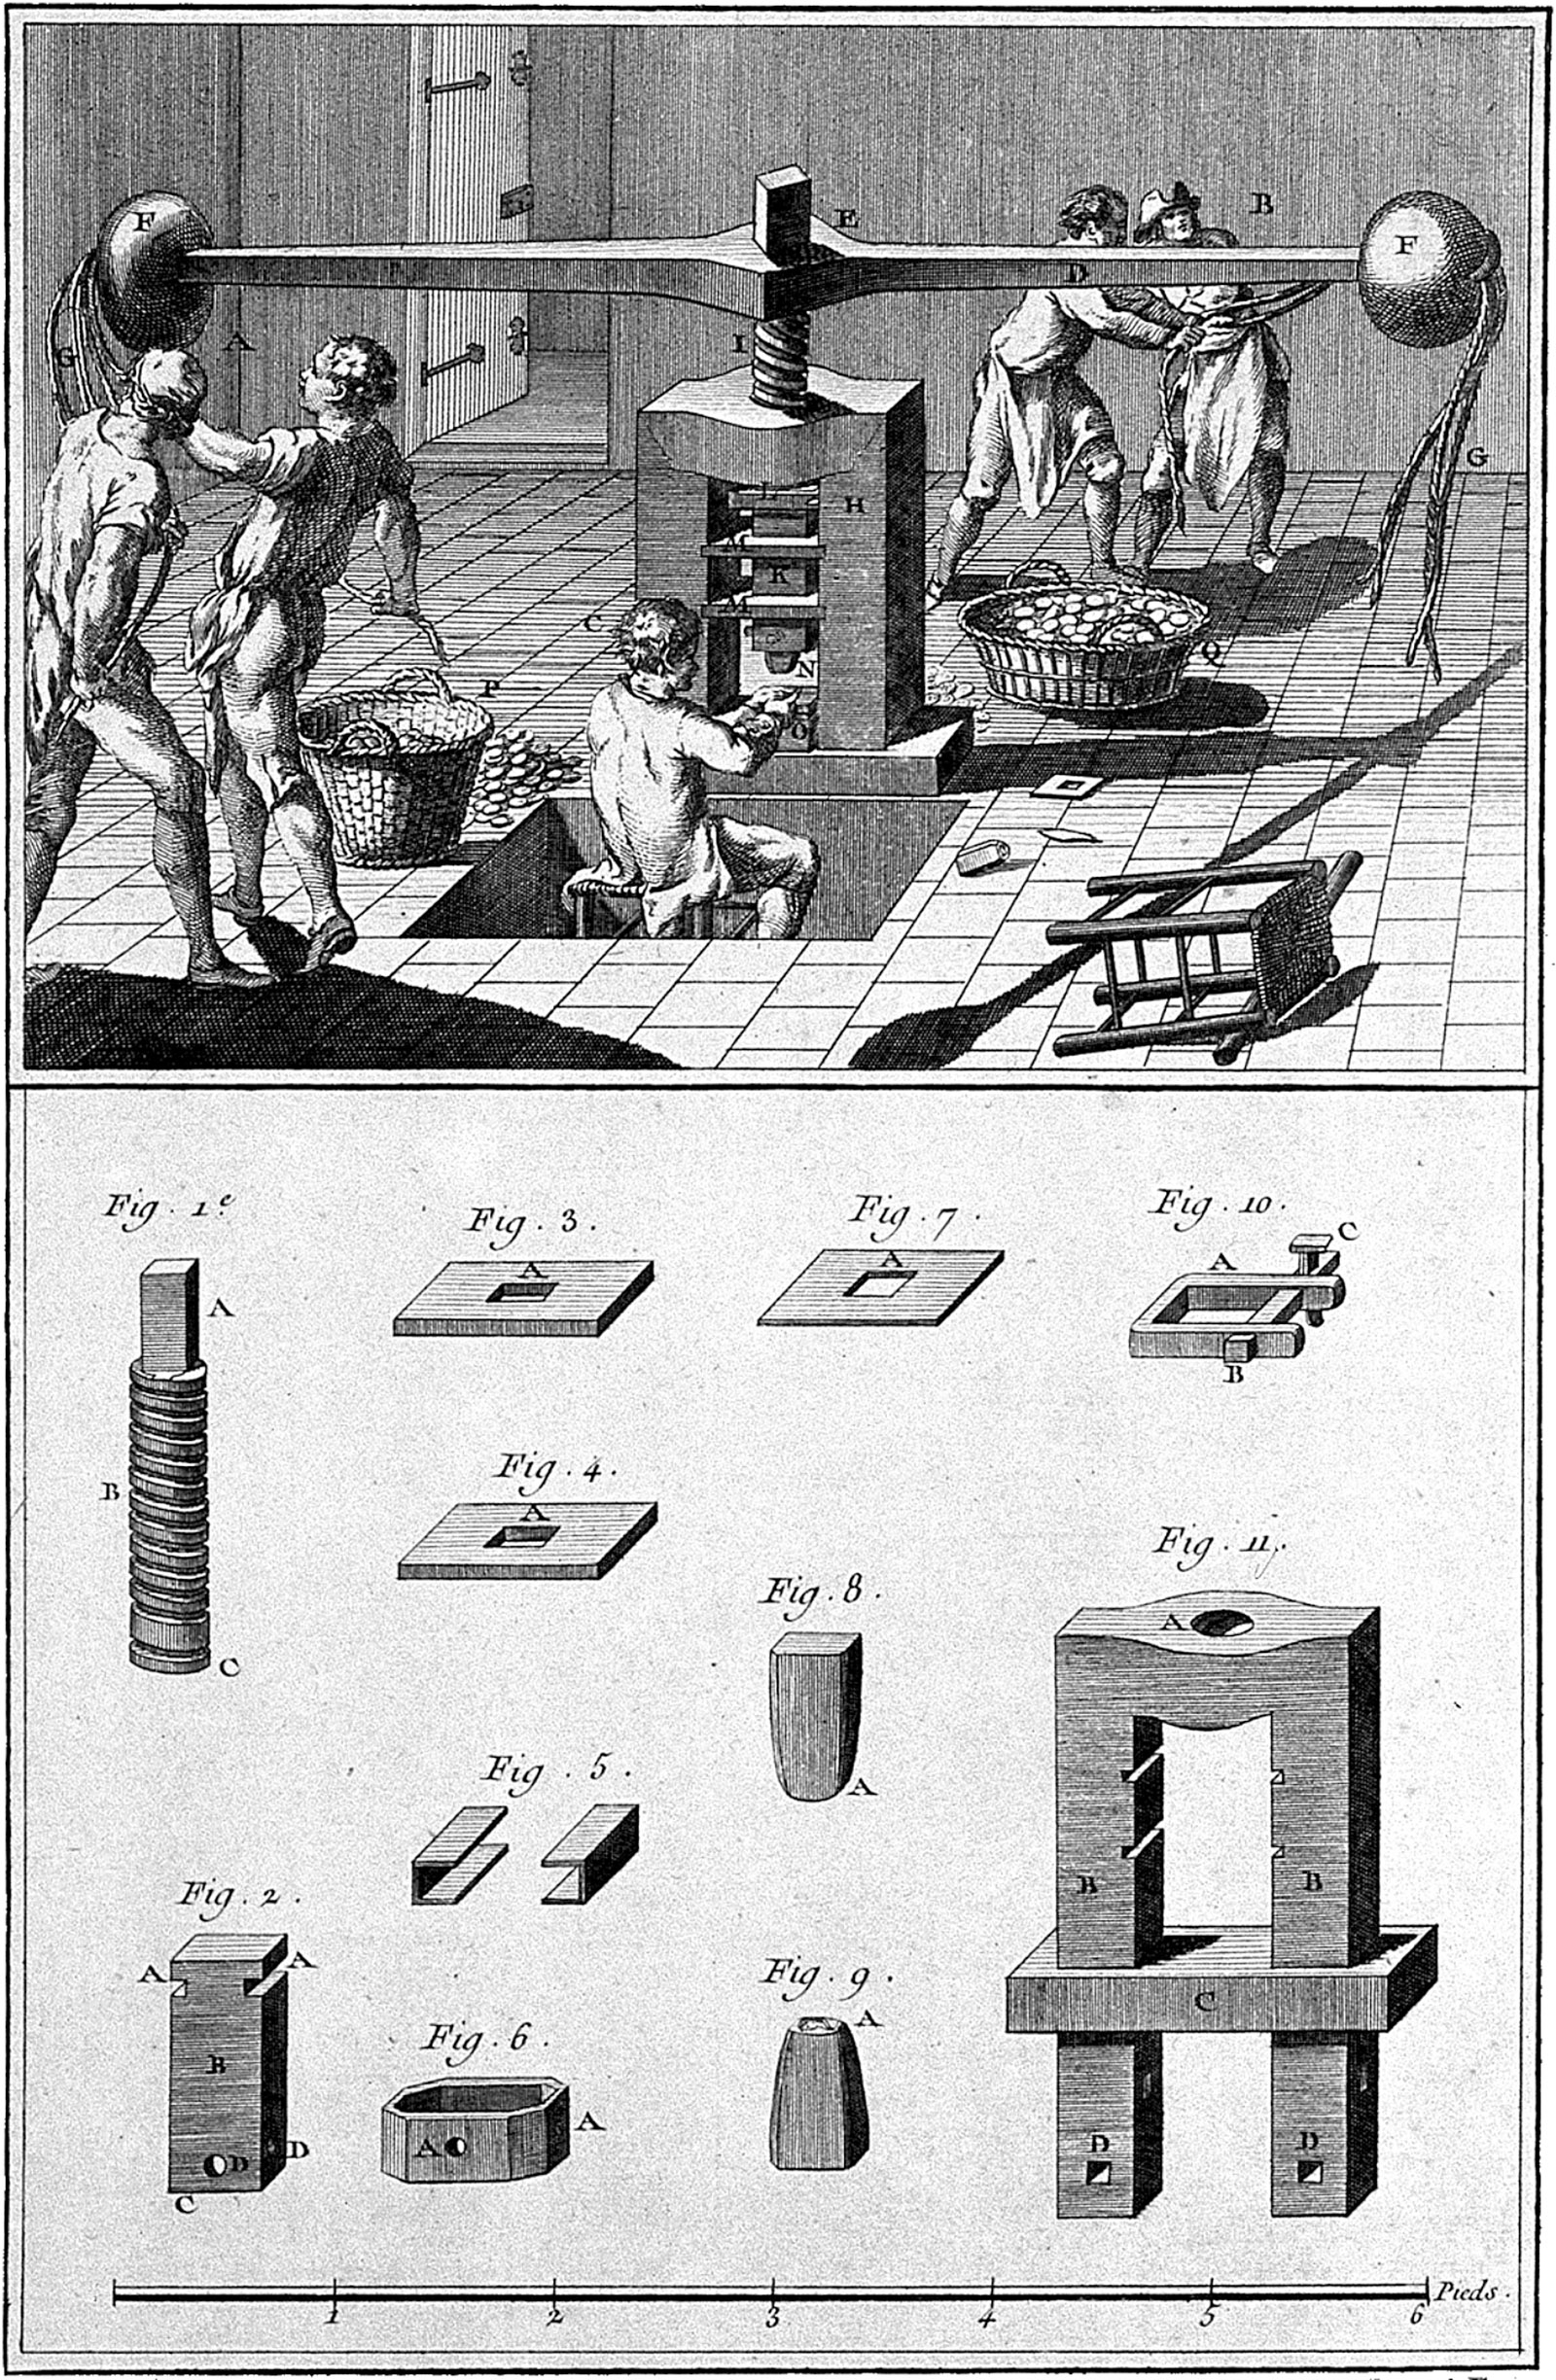 Interior view and components of a coin press; etching from Diderot's Encyclopedia